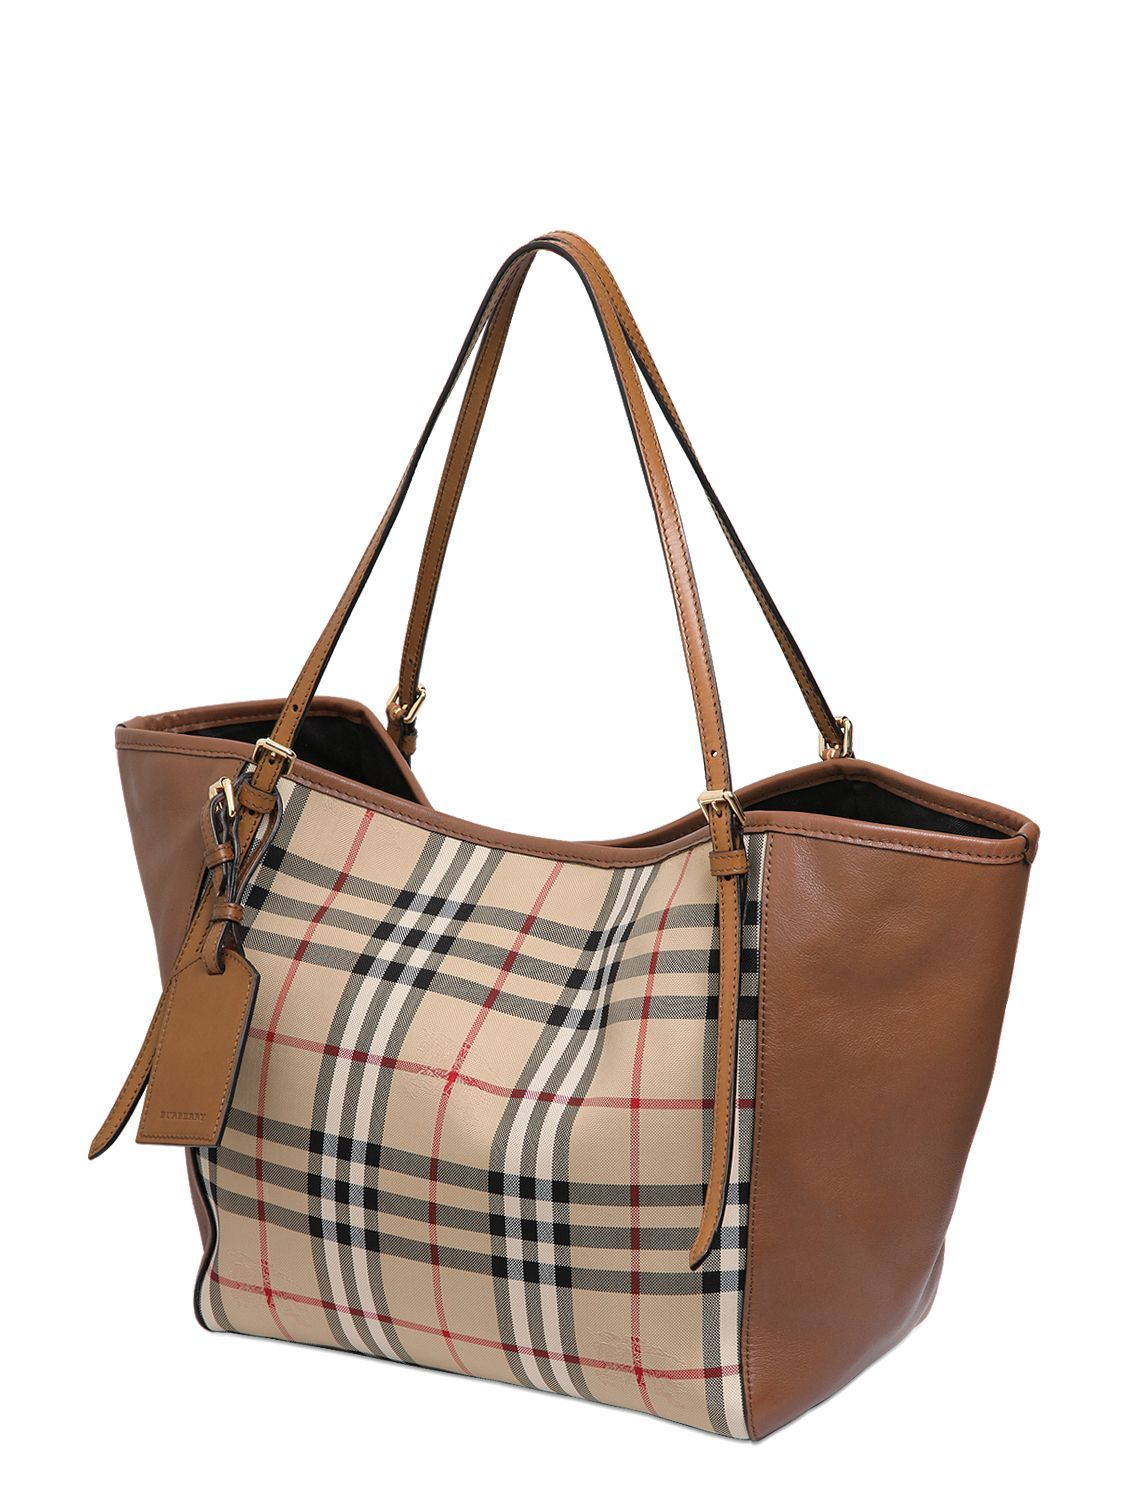 Burberry Canterbury Horseferry Leather Bag Luisaviaroma Luxury Ping Worldwide Shipping Florence